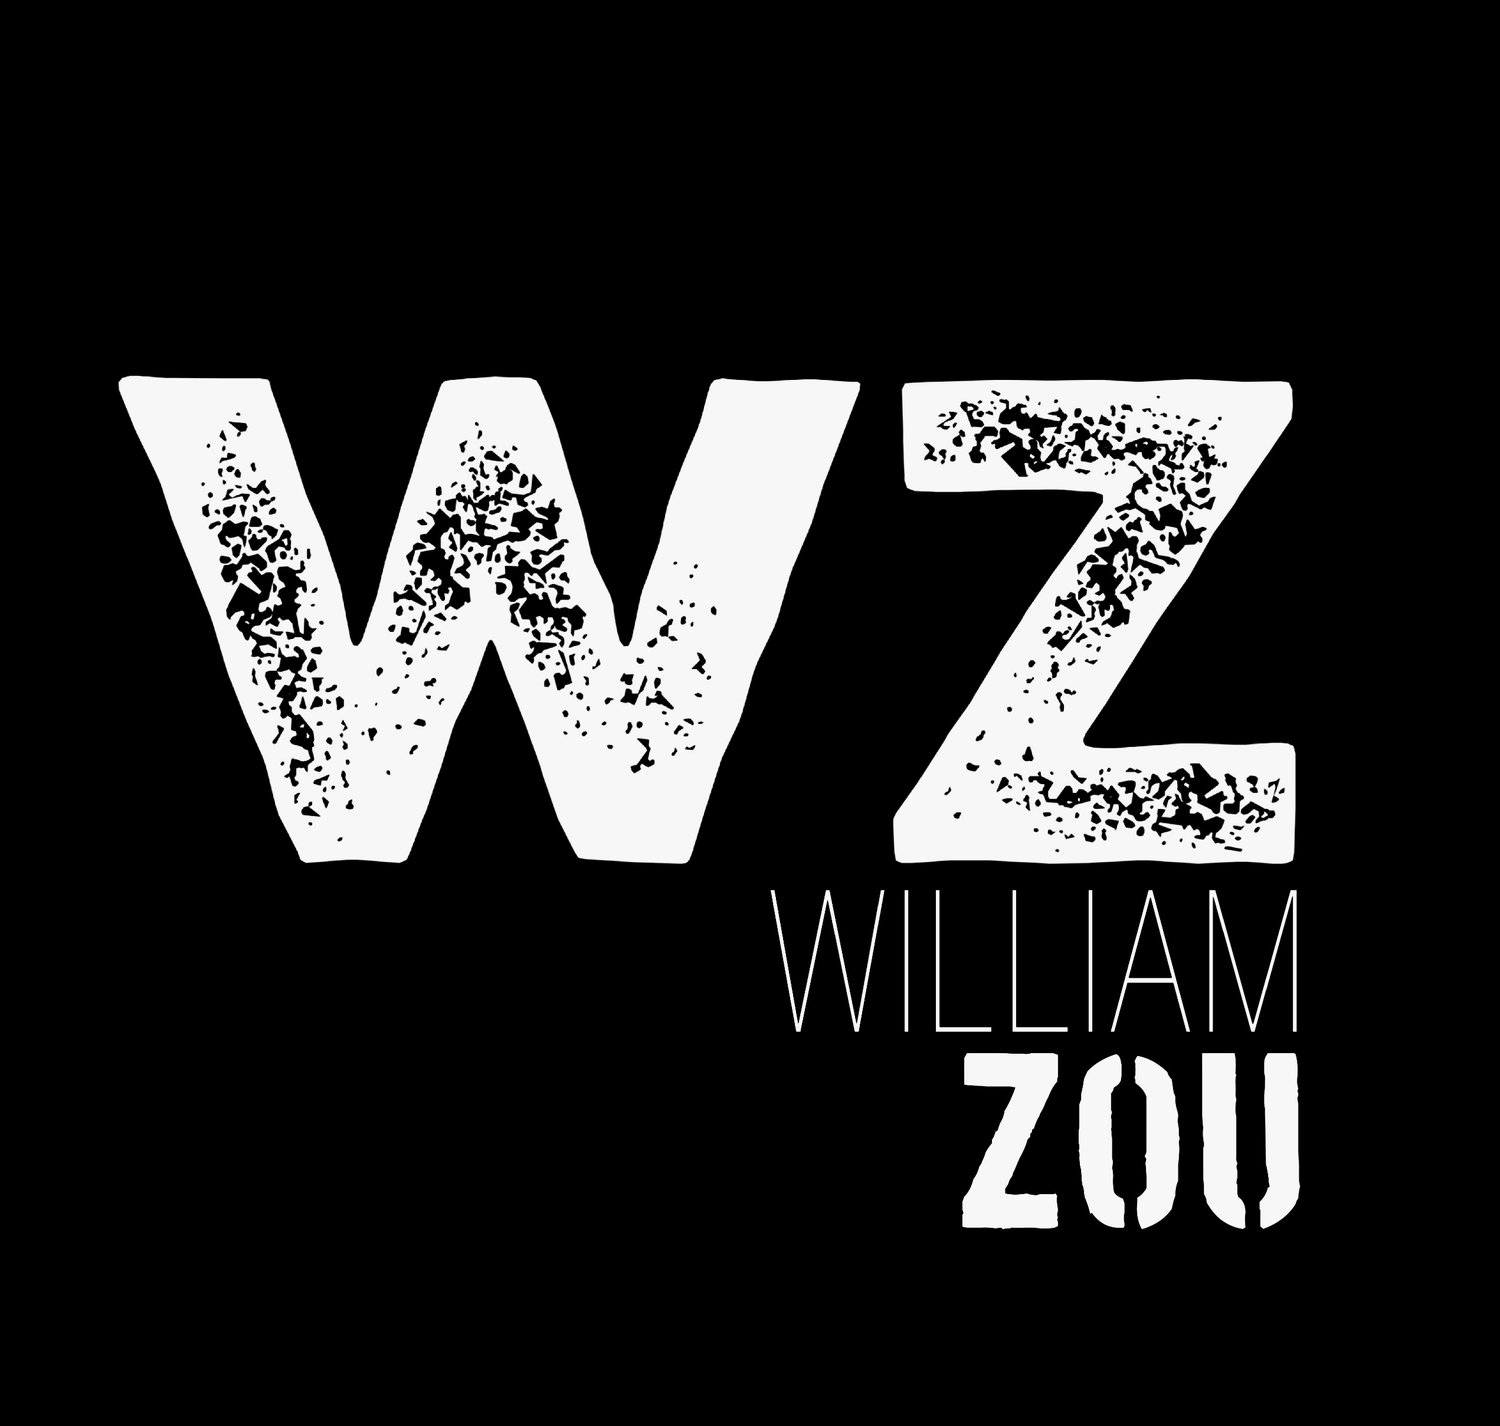 WILLIAM ZOU